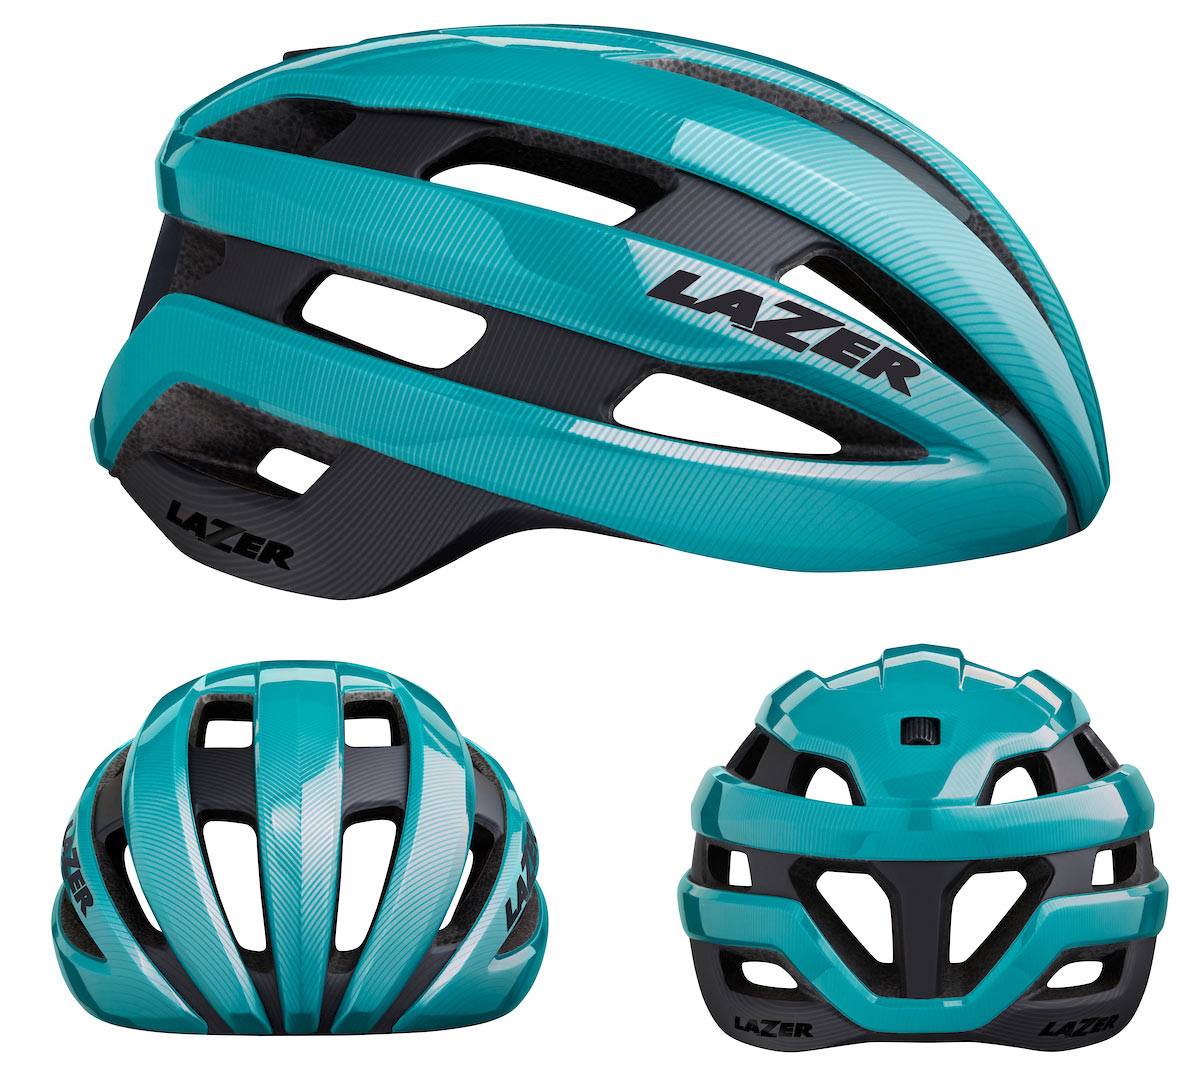 lazer sphere mips road bike helmet side front and back view